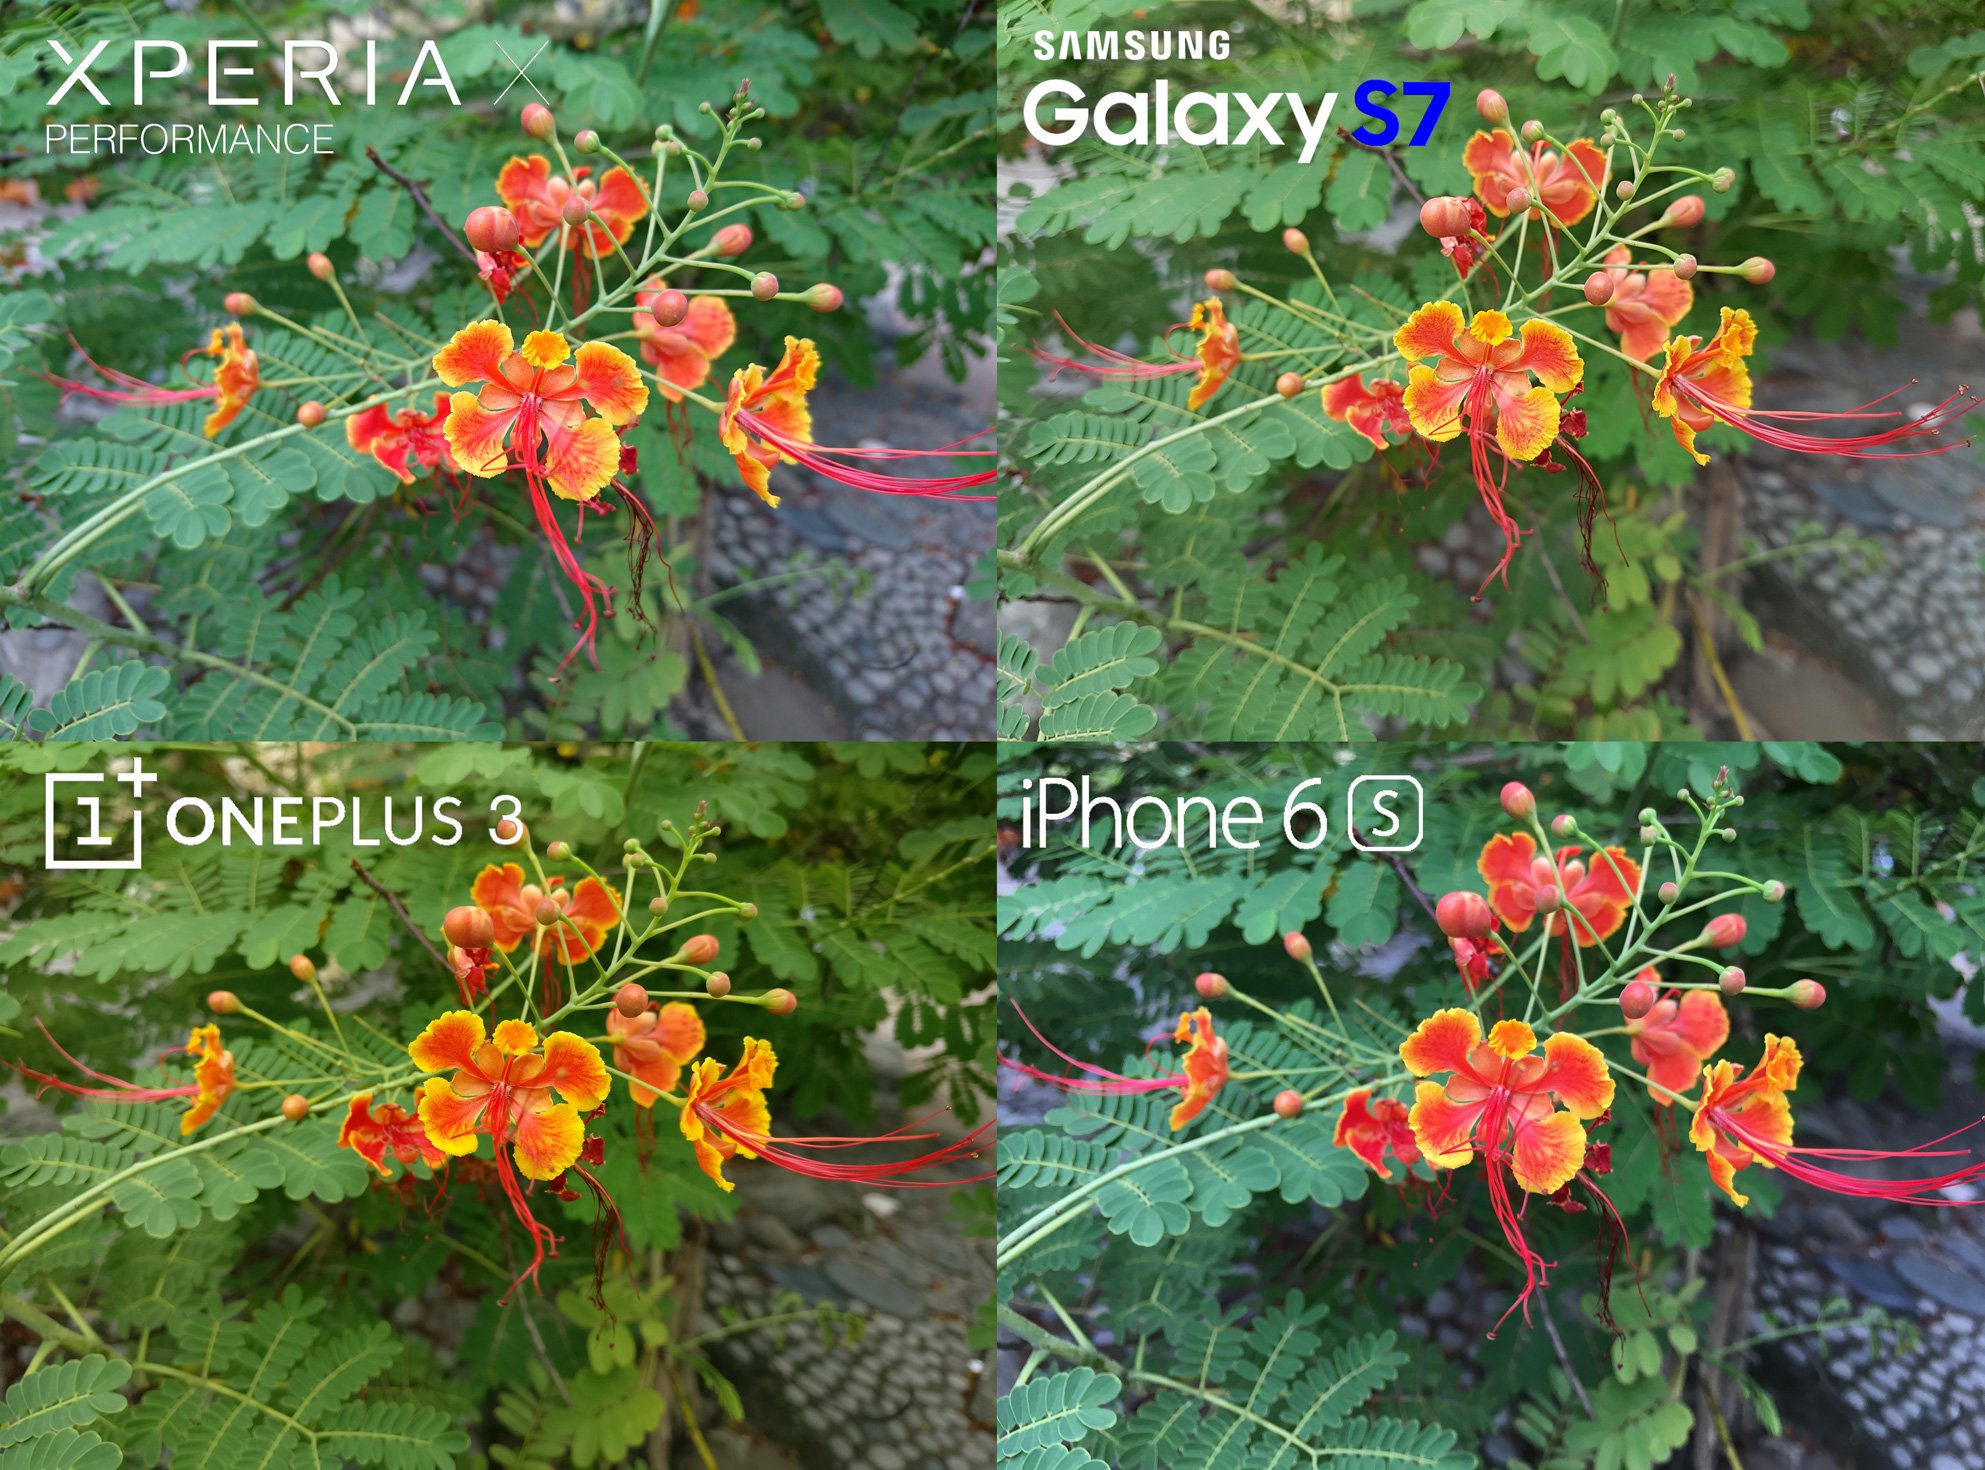 Camera Review Sony Xperia X Performance Samsung Galaxy S7 iPhone 6s 7 OnePlus 3 6 close up macro